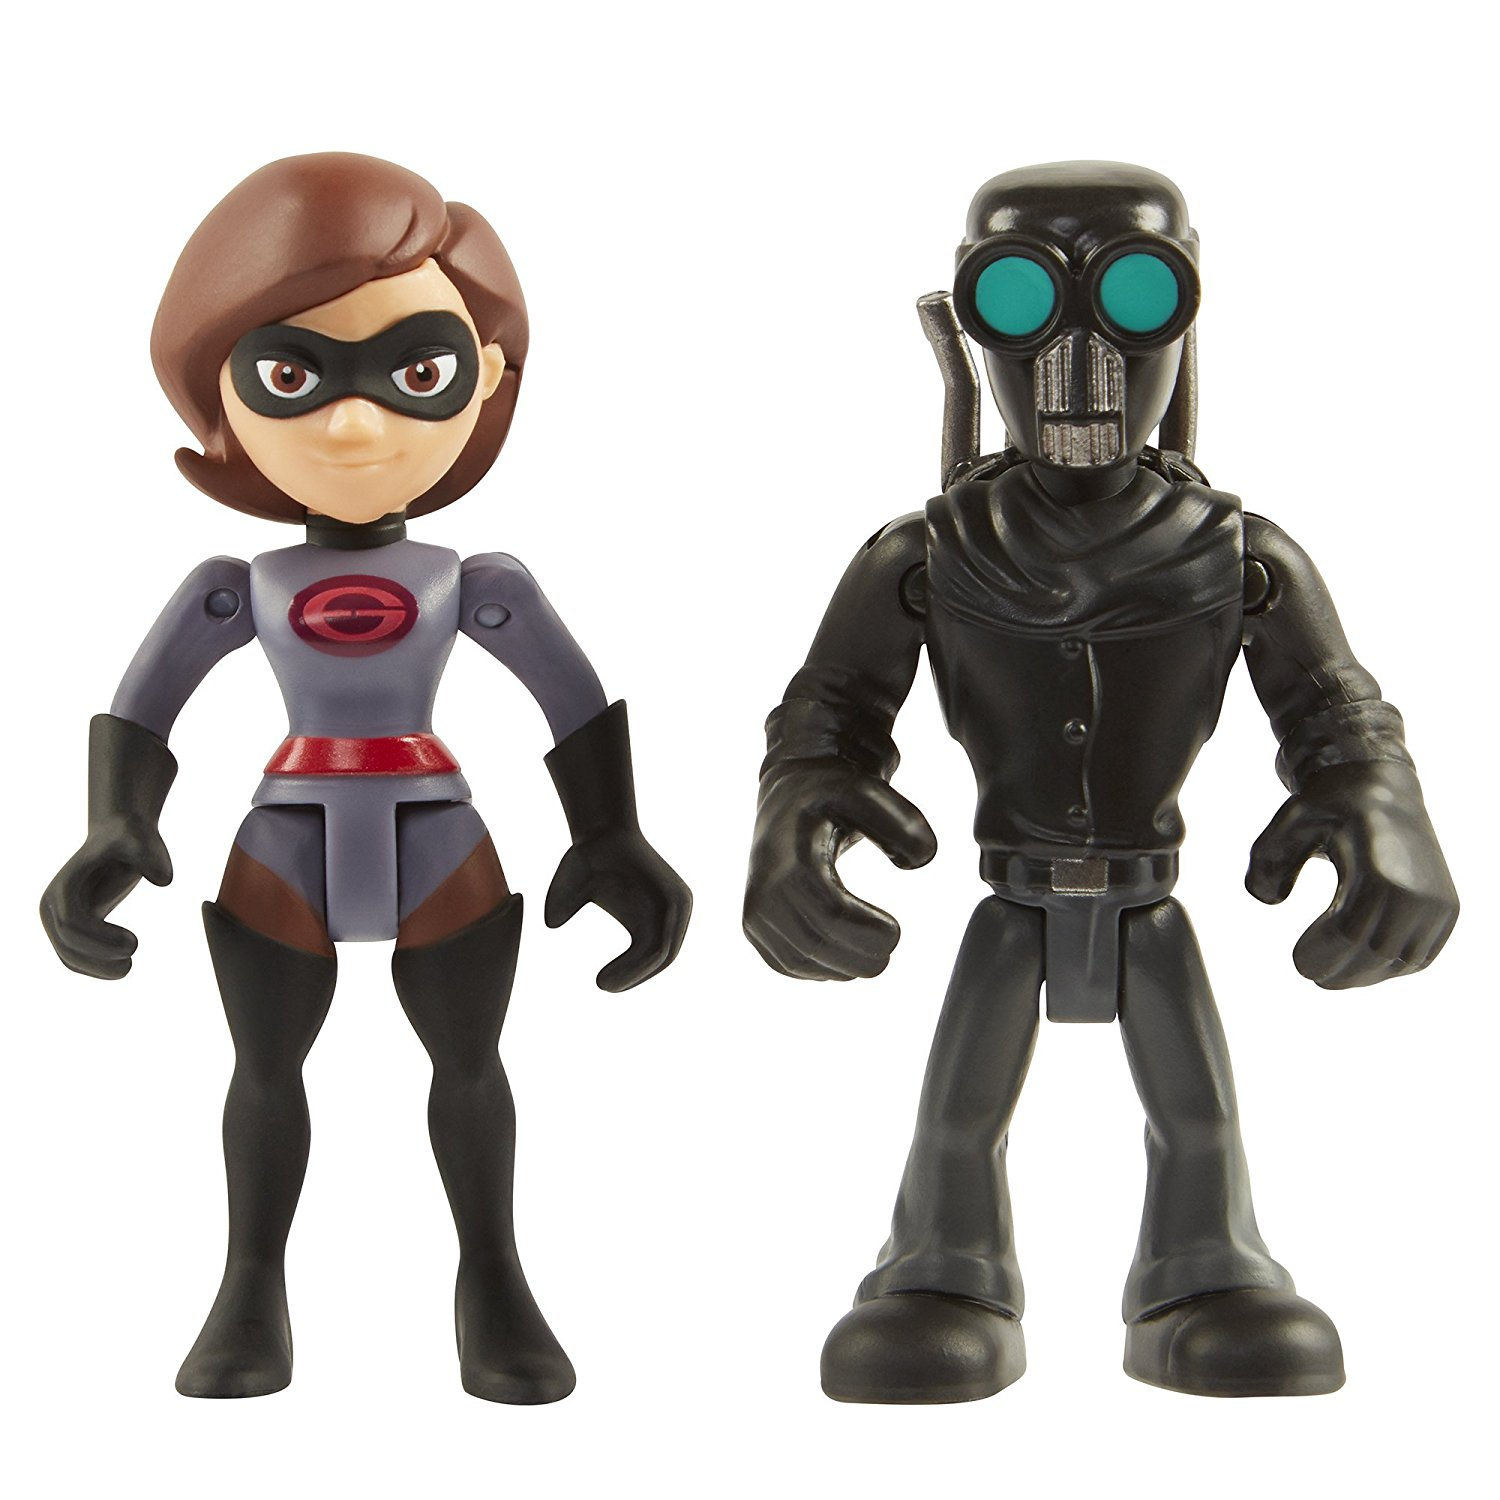 7c5156354 Get Quotations · The Incredibles 2 the Incredibles 2-3-Inch Precool  Elastigirl & SS 2-